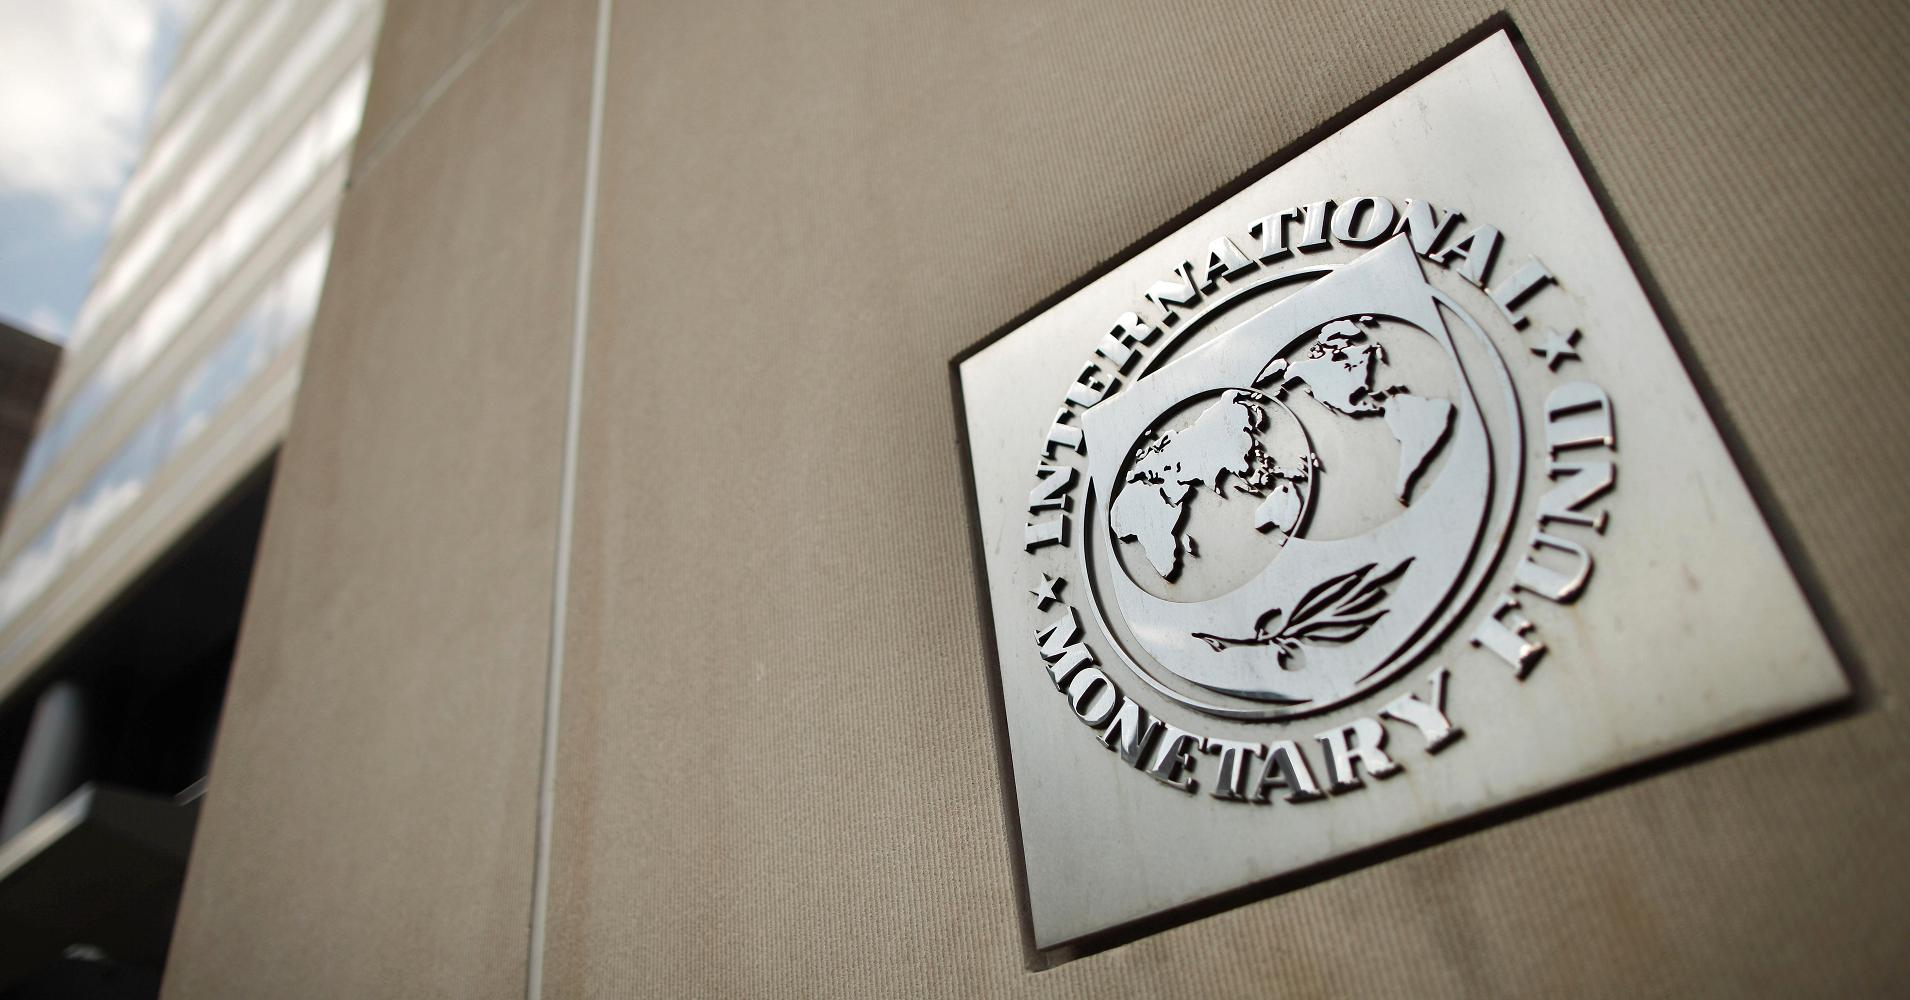 IMF: There is currently no discussion with Greece about changes in the programme